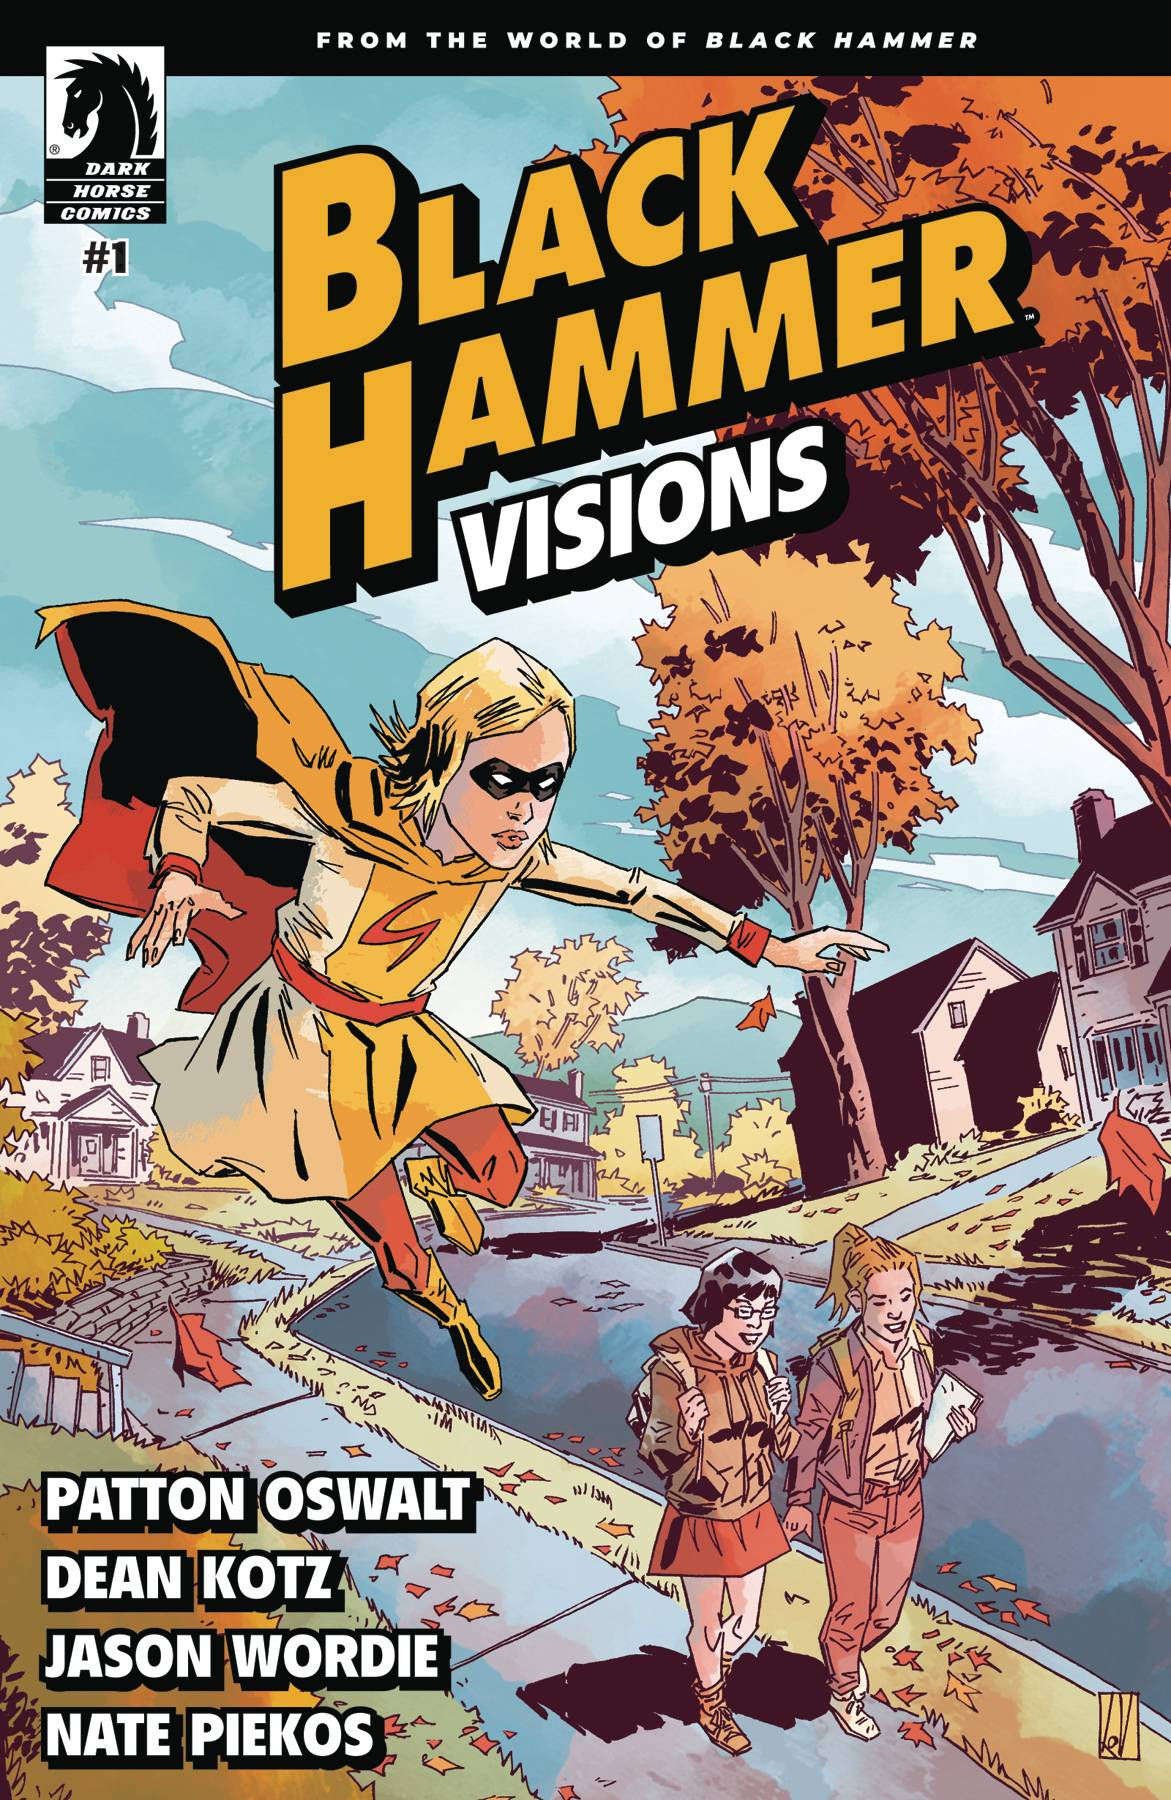 BLACK HAMMER VISIONS #1 (OF 8)